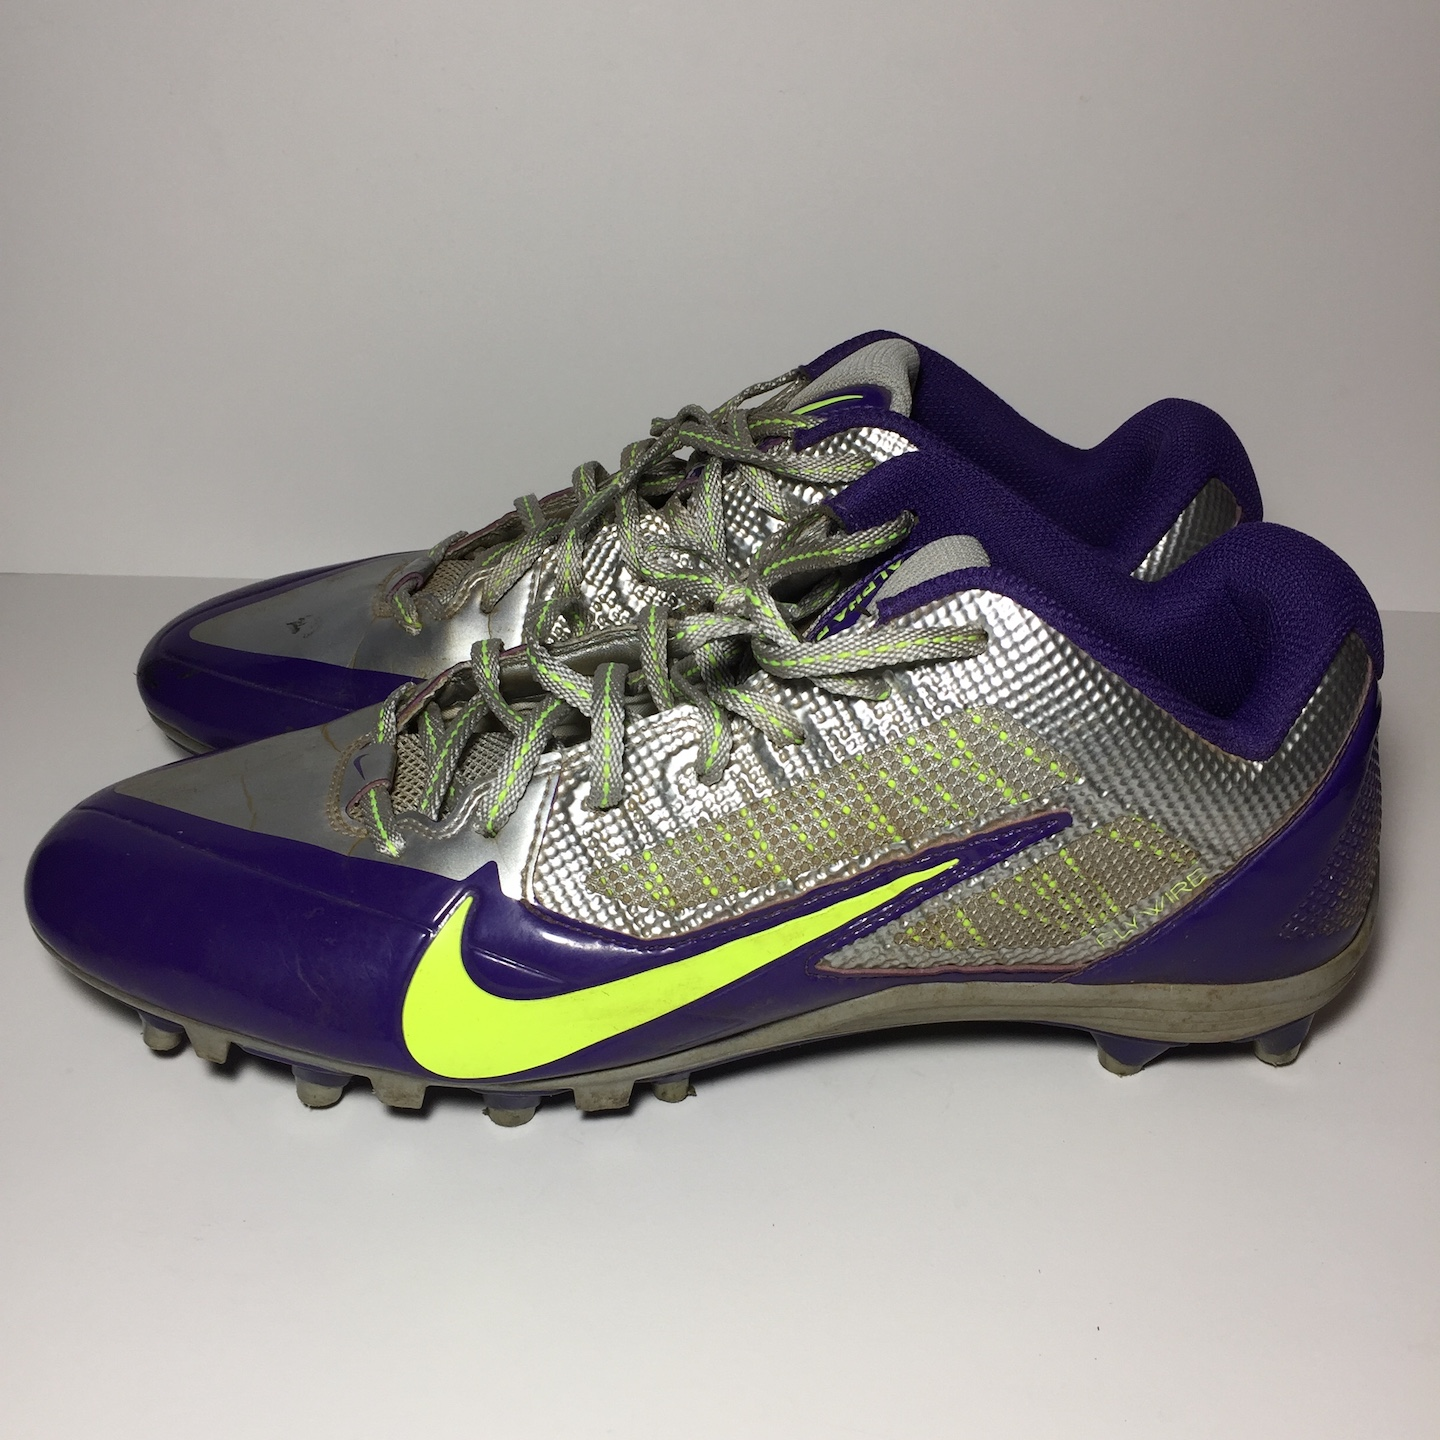 a7011d19cee0 Nike Nike Alpha Pro TD Mens Shoes 579545 Purple Silver Football Cleats Size  12 - Low-Top Sneakers for Sale - Grailed